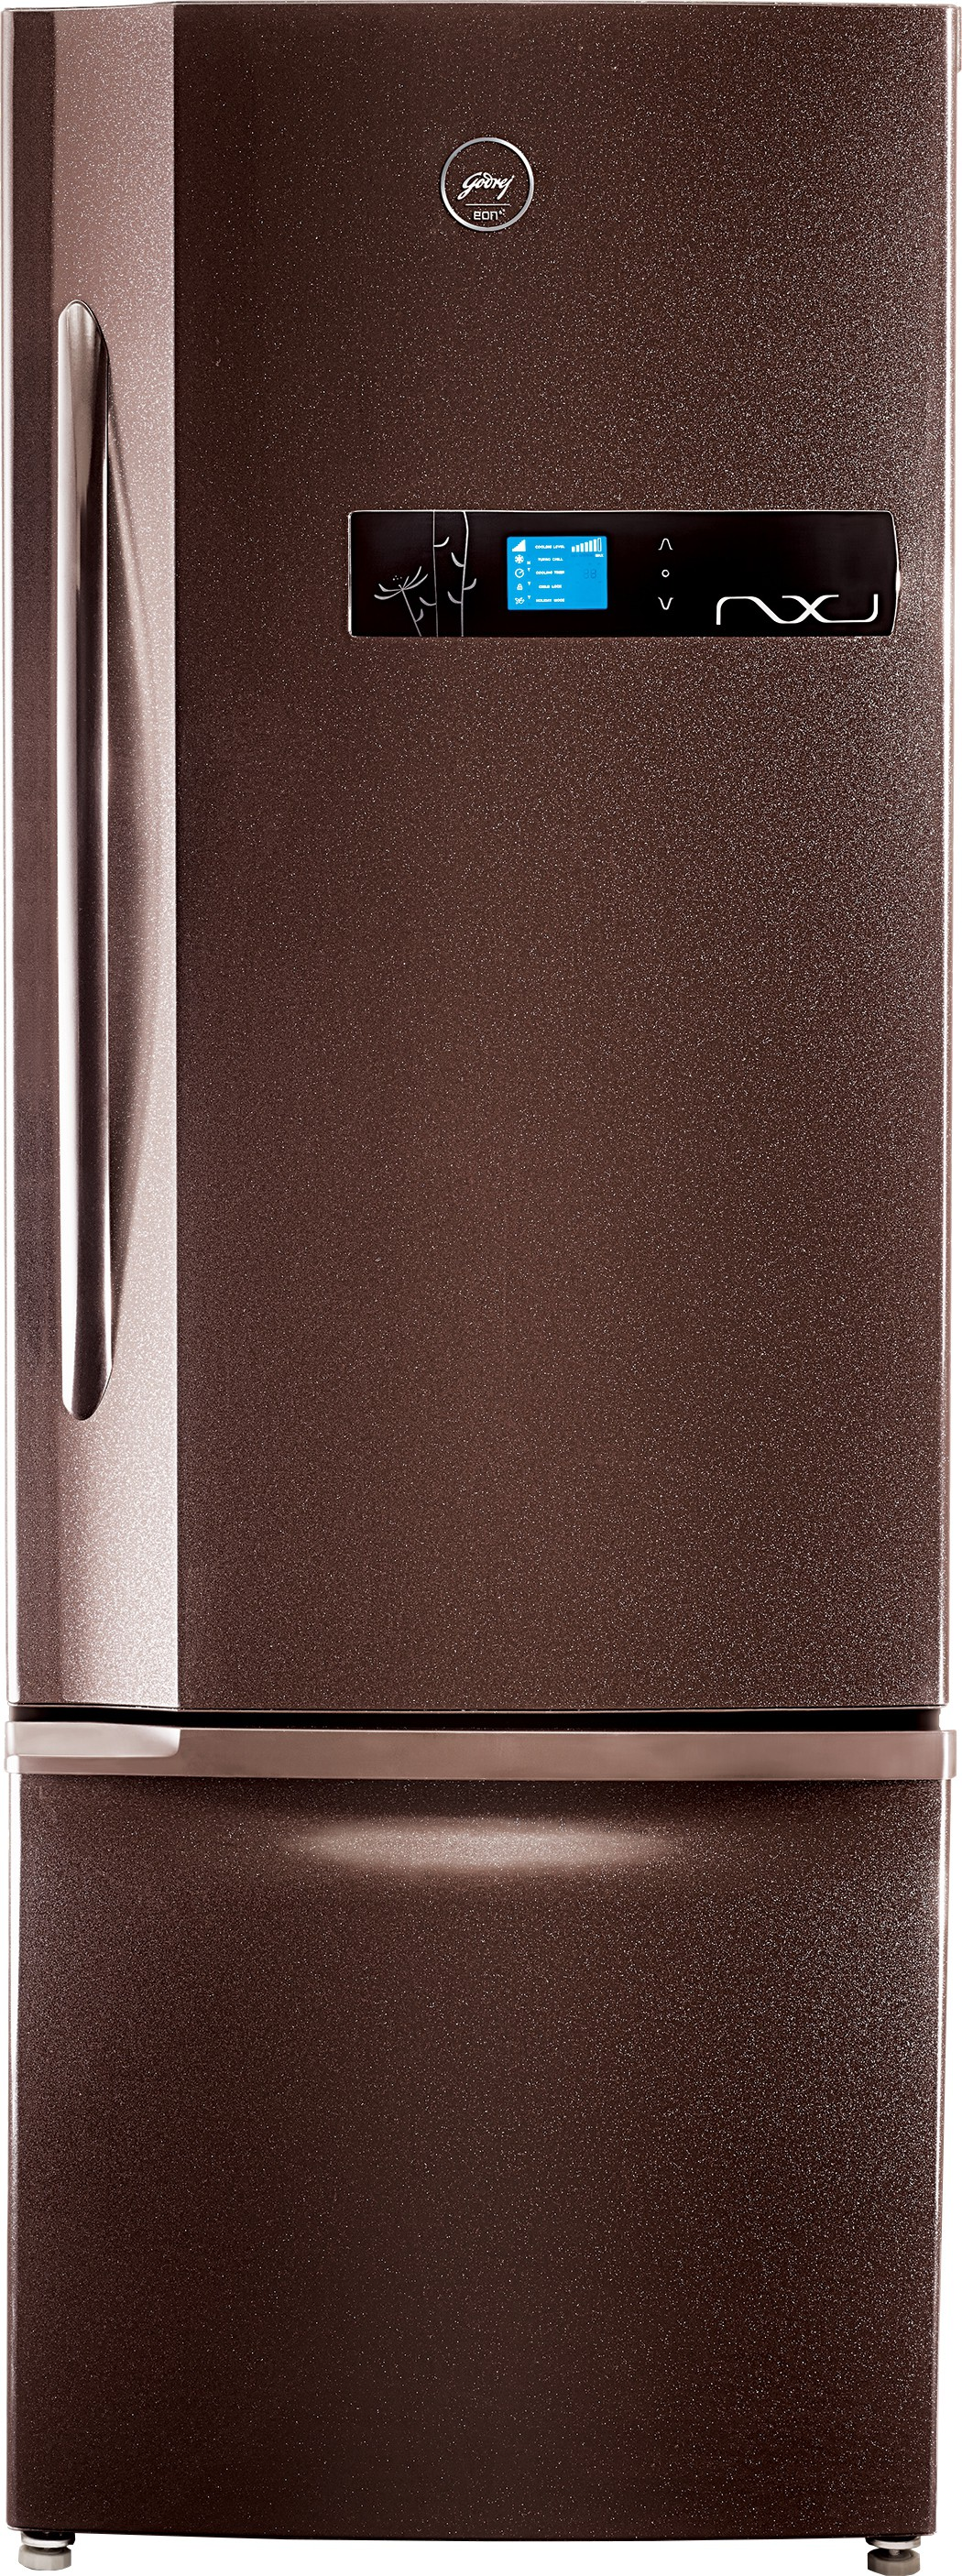 View Godrej 405 L Frost Free Double Door Refrigerator  Price Online